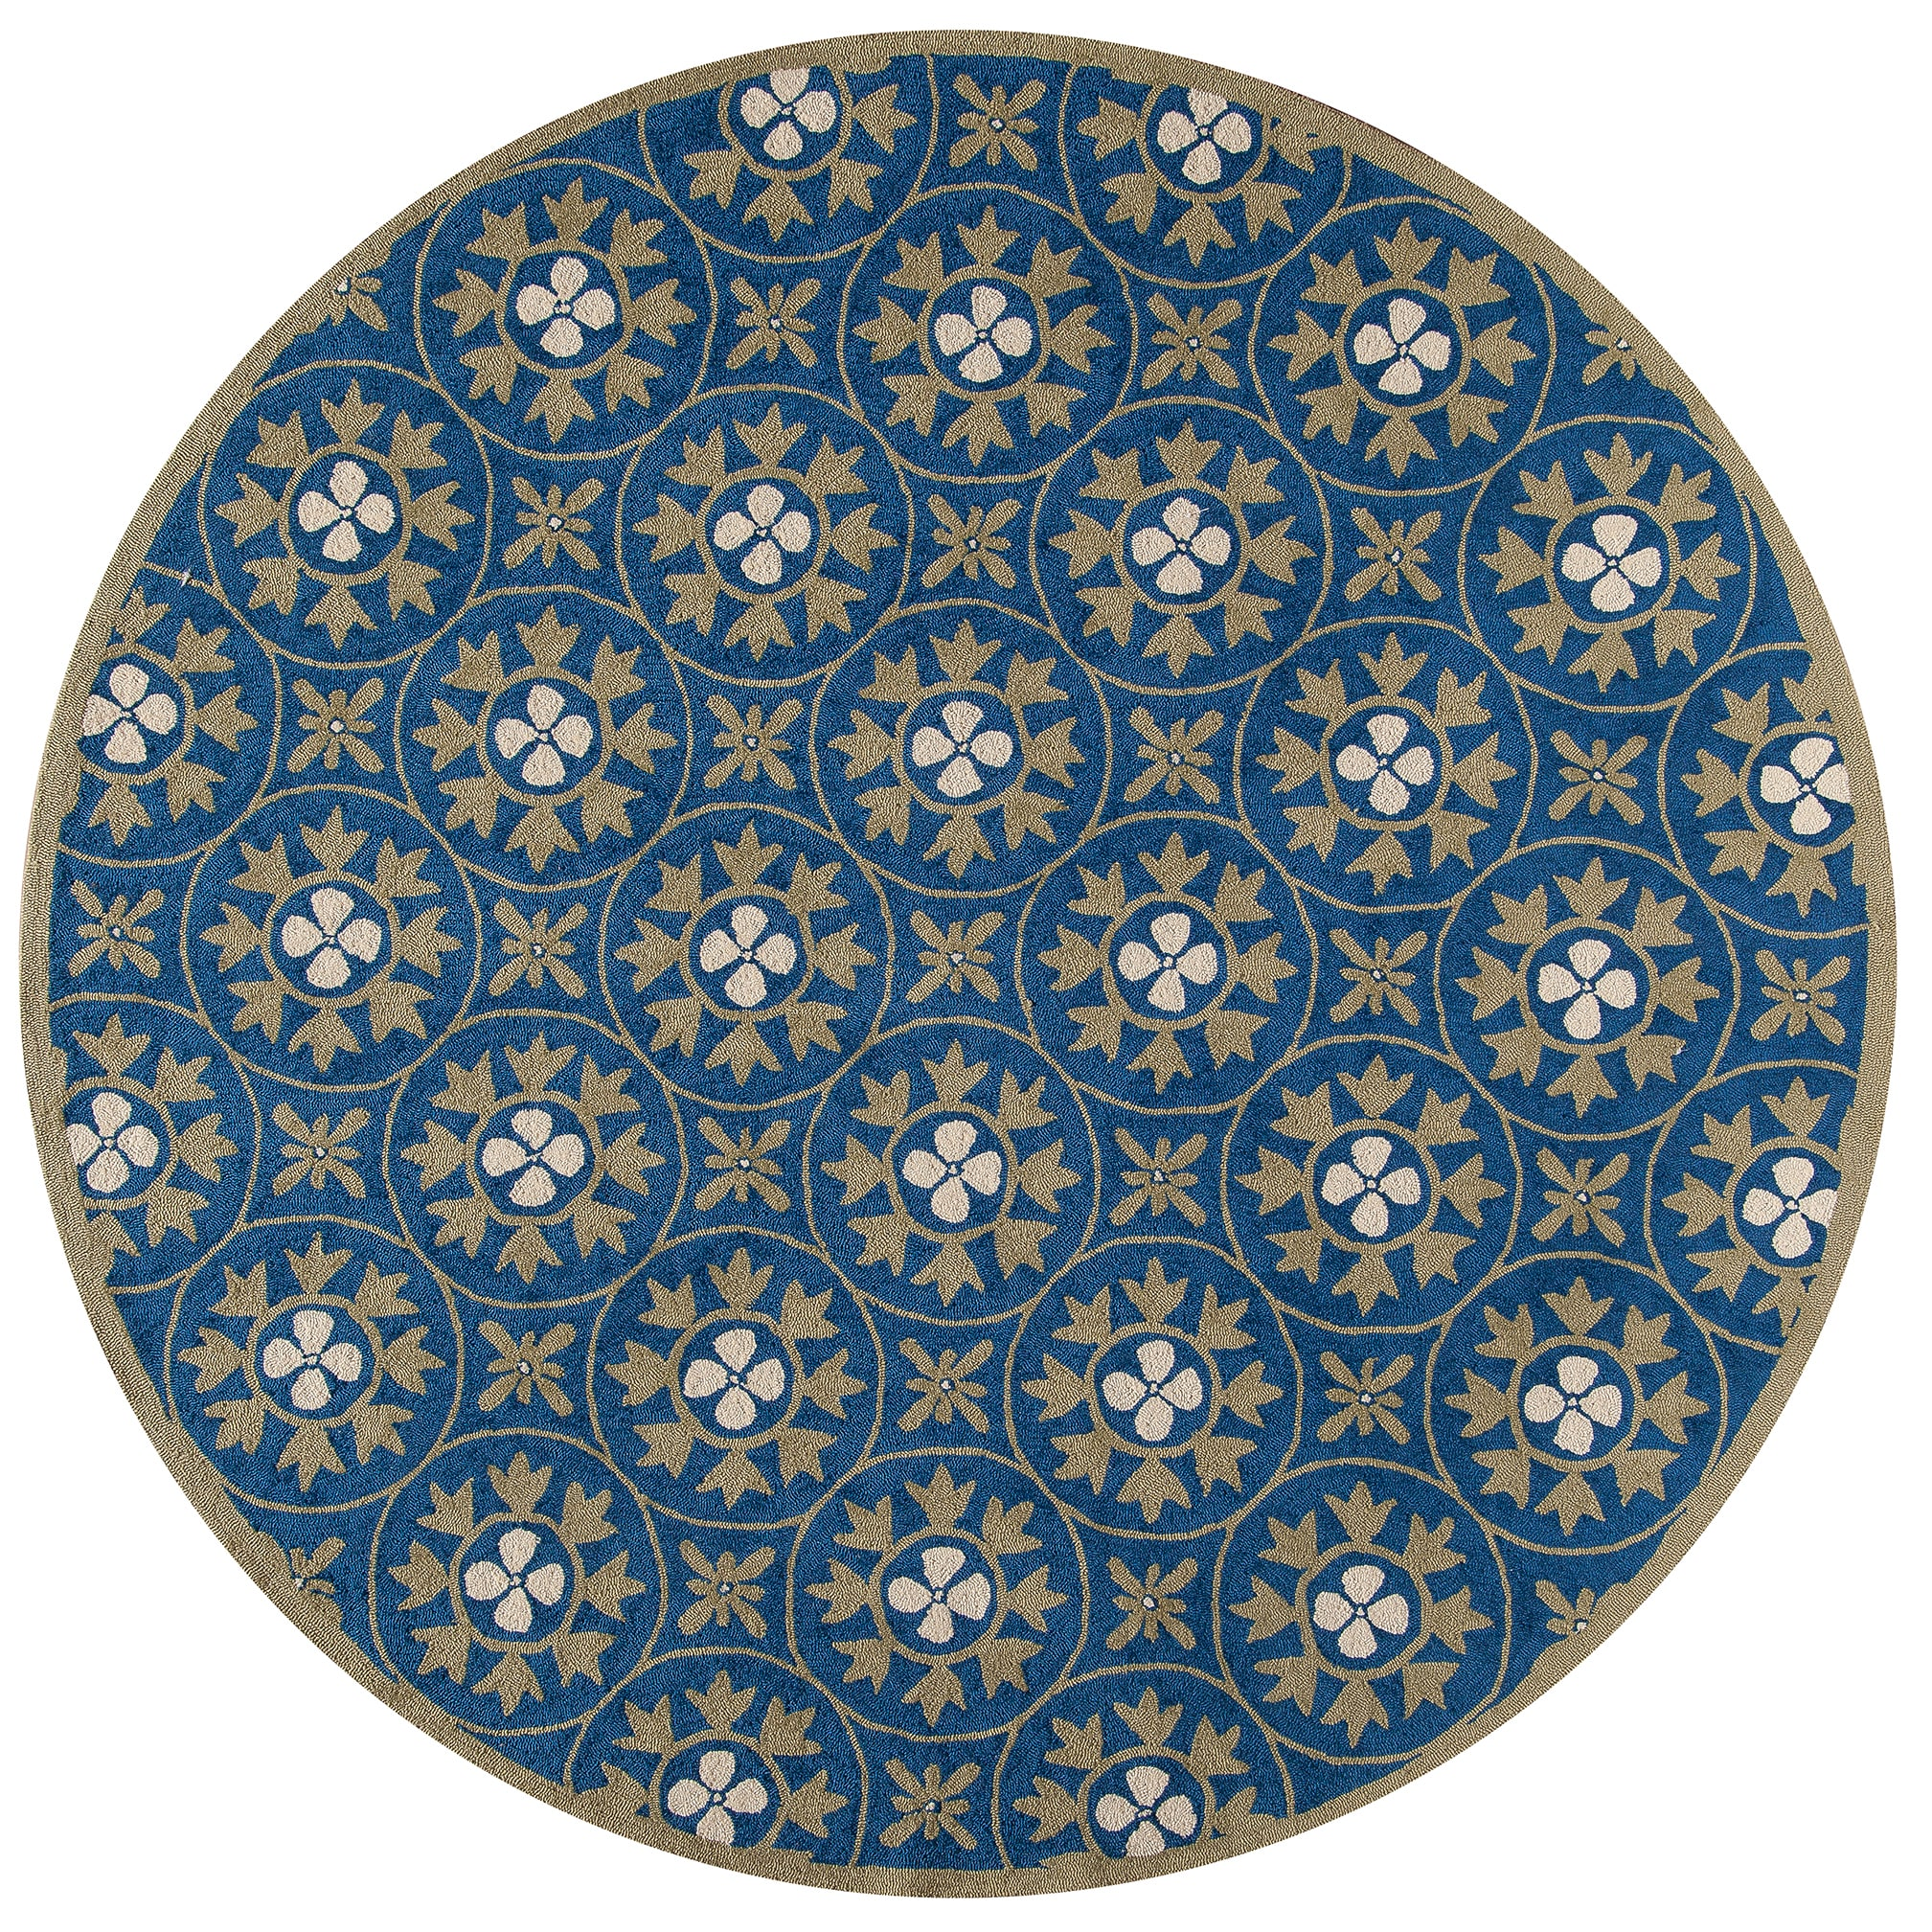 Momeni Veranda Blue Moroccan Tile Indoor Outdoor Rug 9 X 9